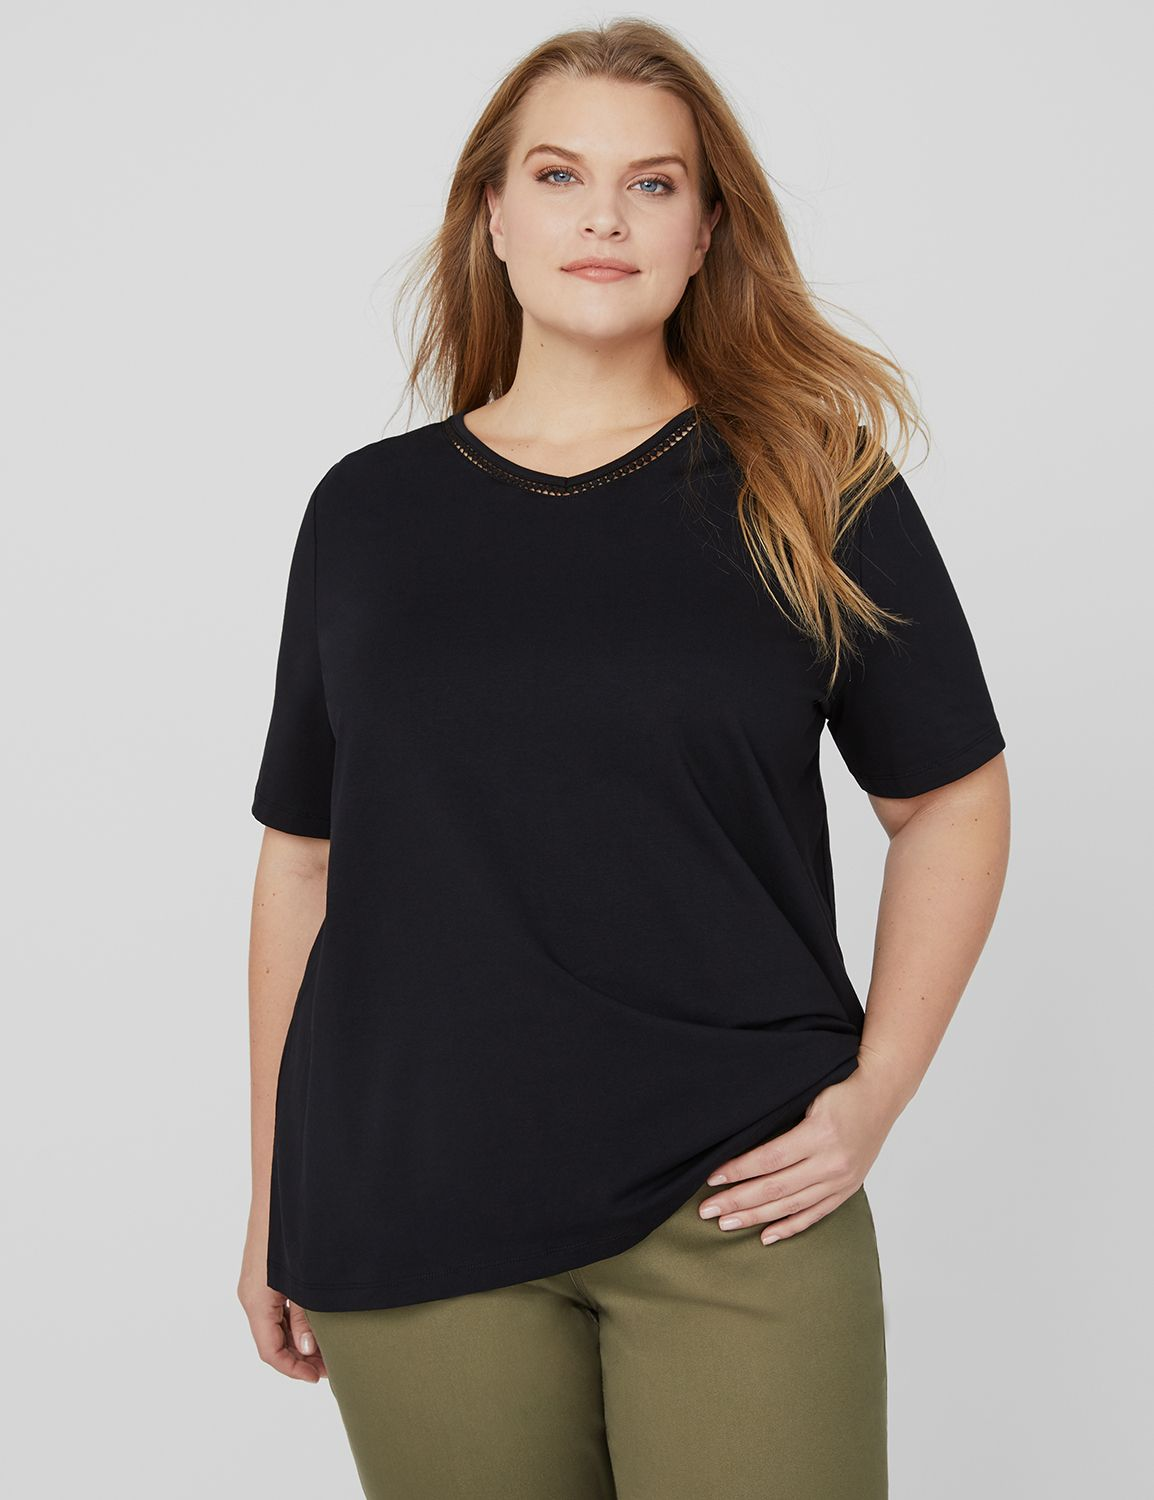 Suprema Lavish Tee 1087747 SS Basic Vneck with trim- S MP-300101158